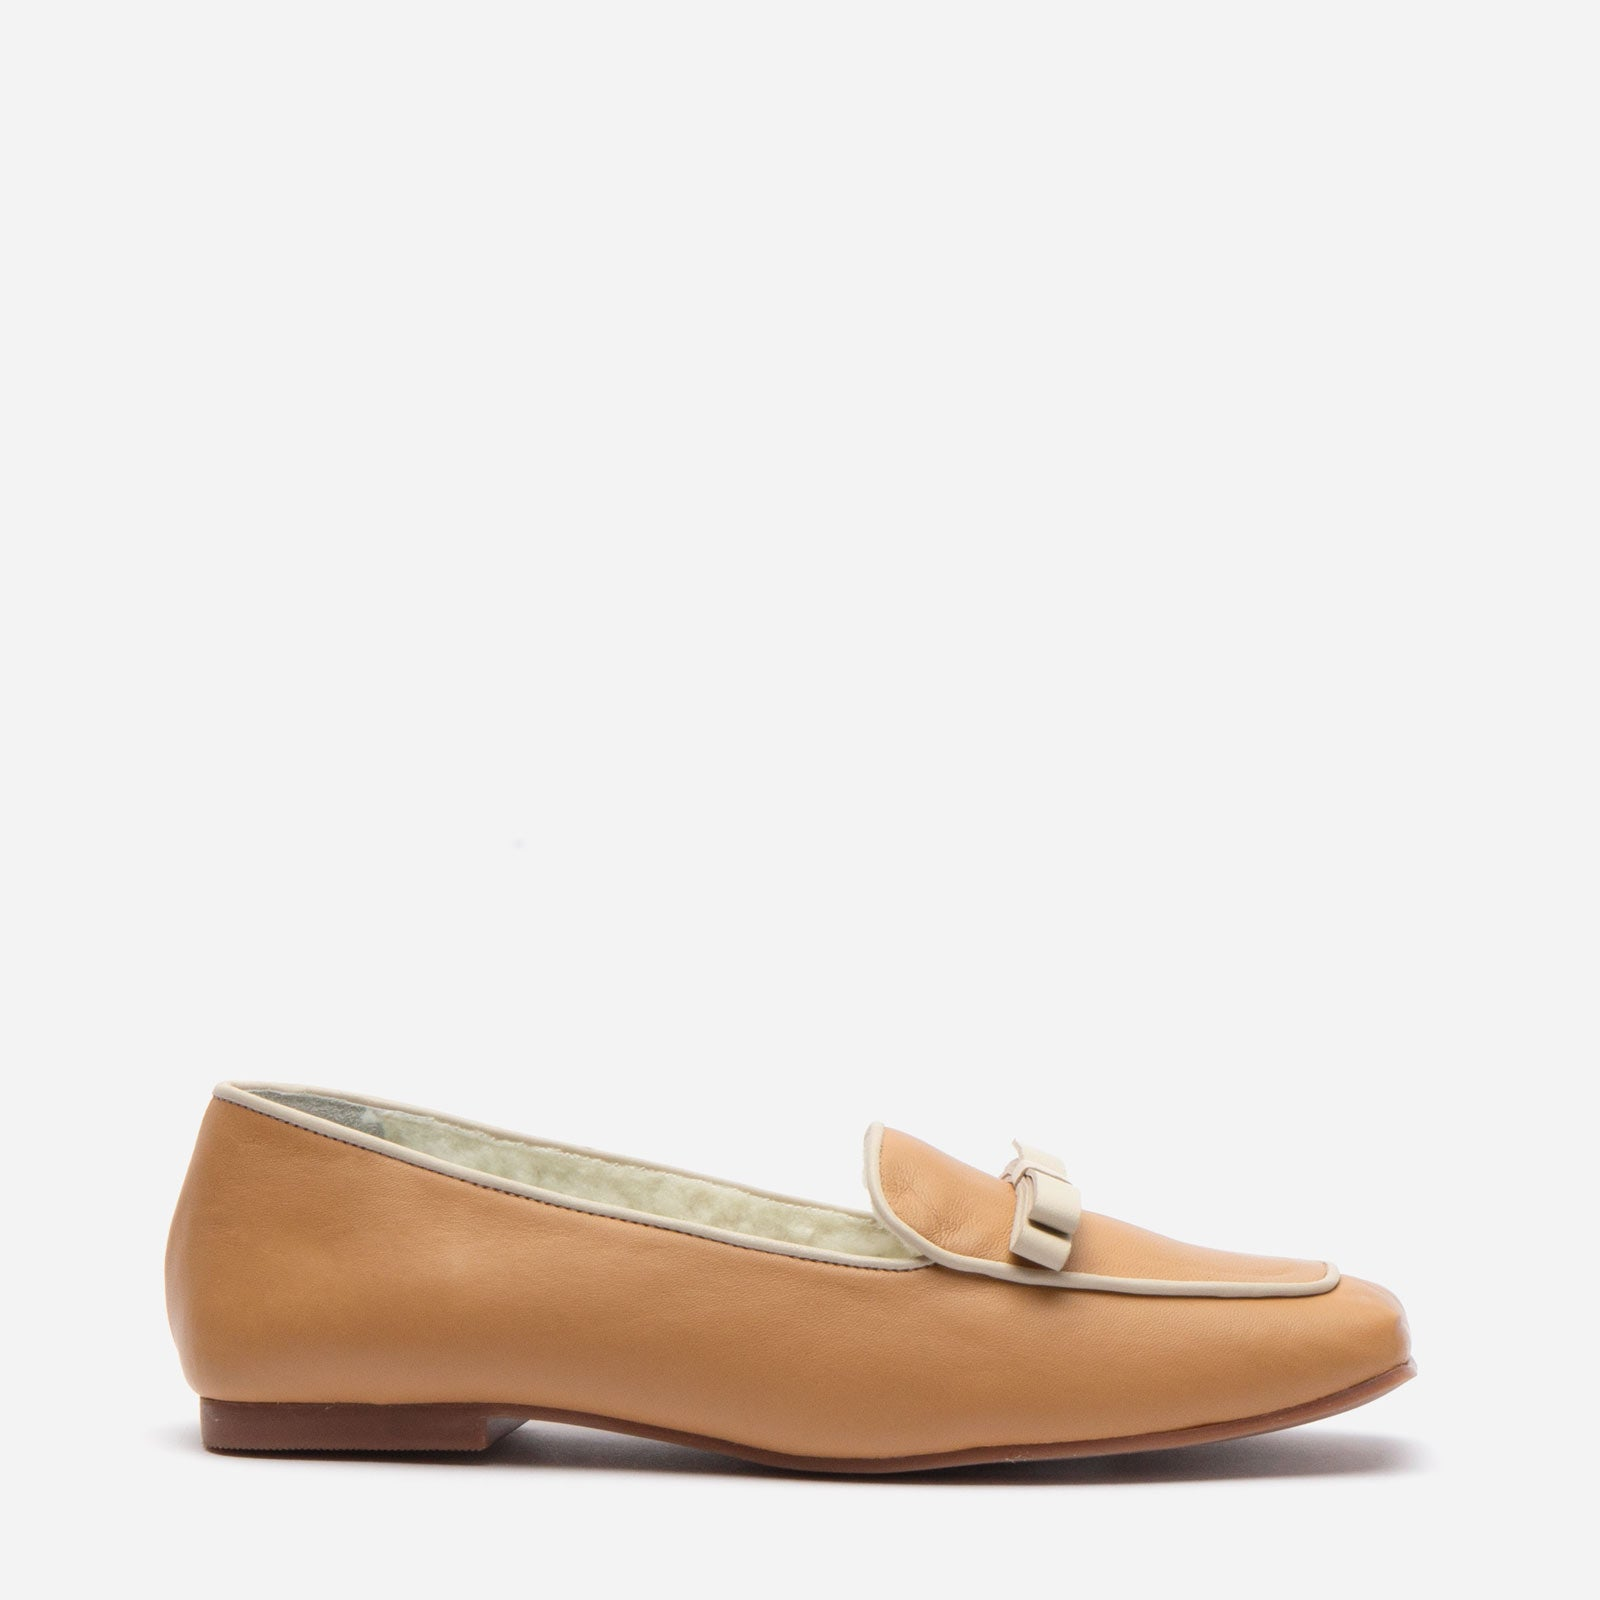 Suzanne Cozy Loafer Nappa Faux Shearling Camel - Frances Valentine